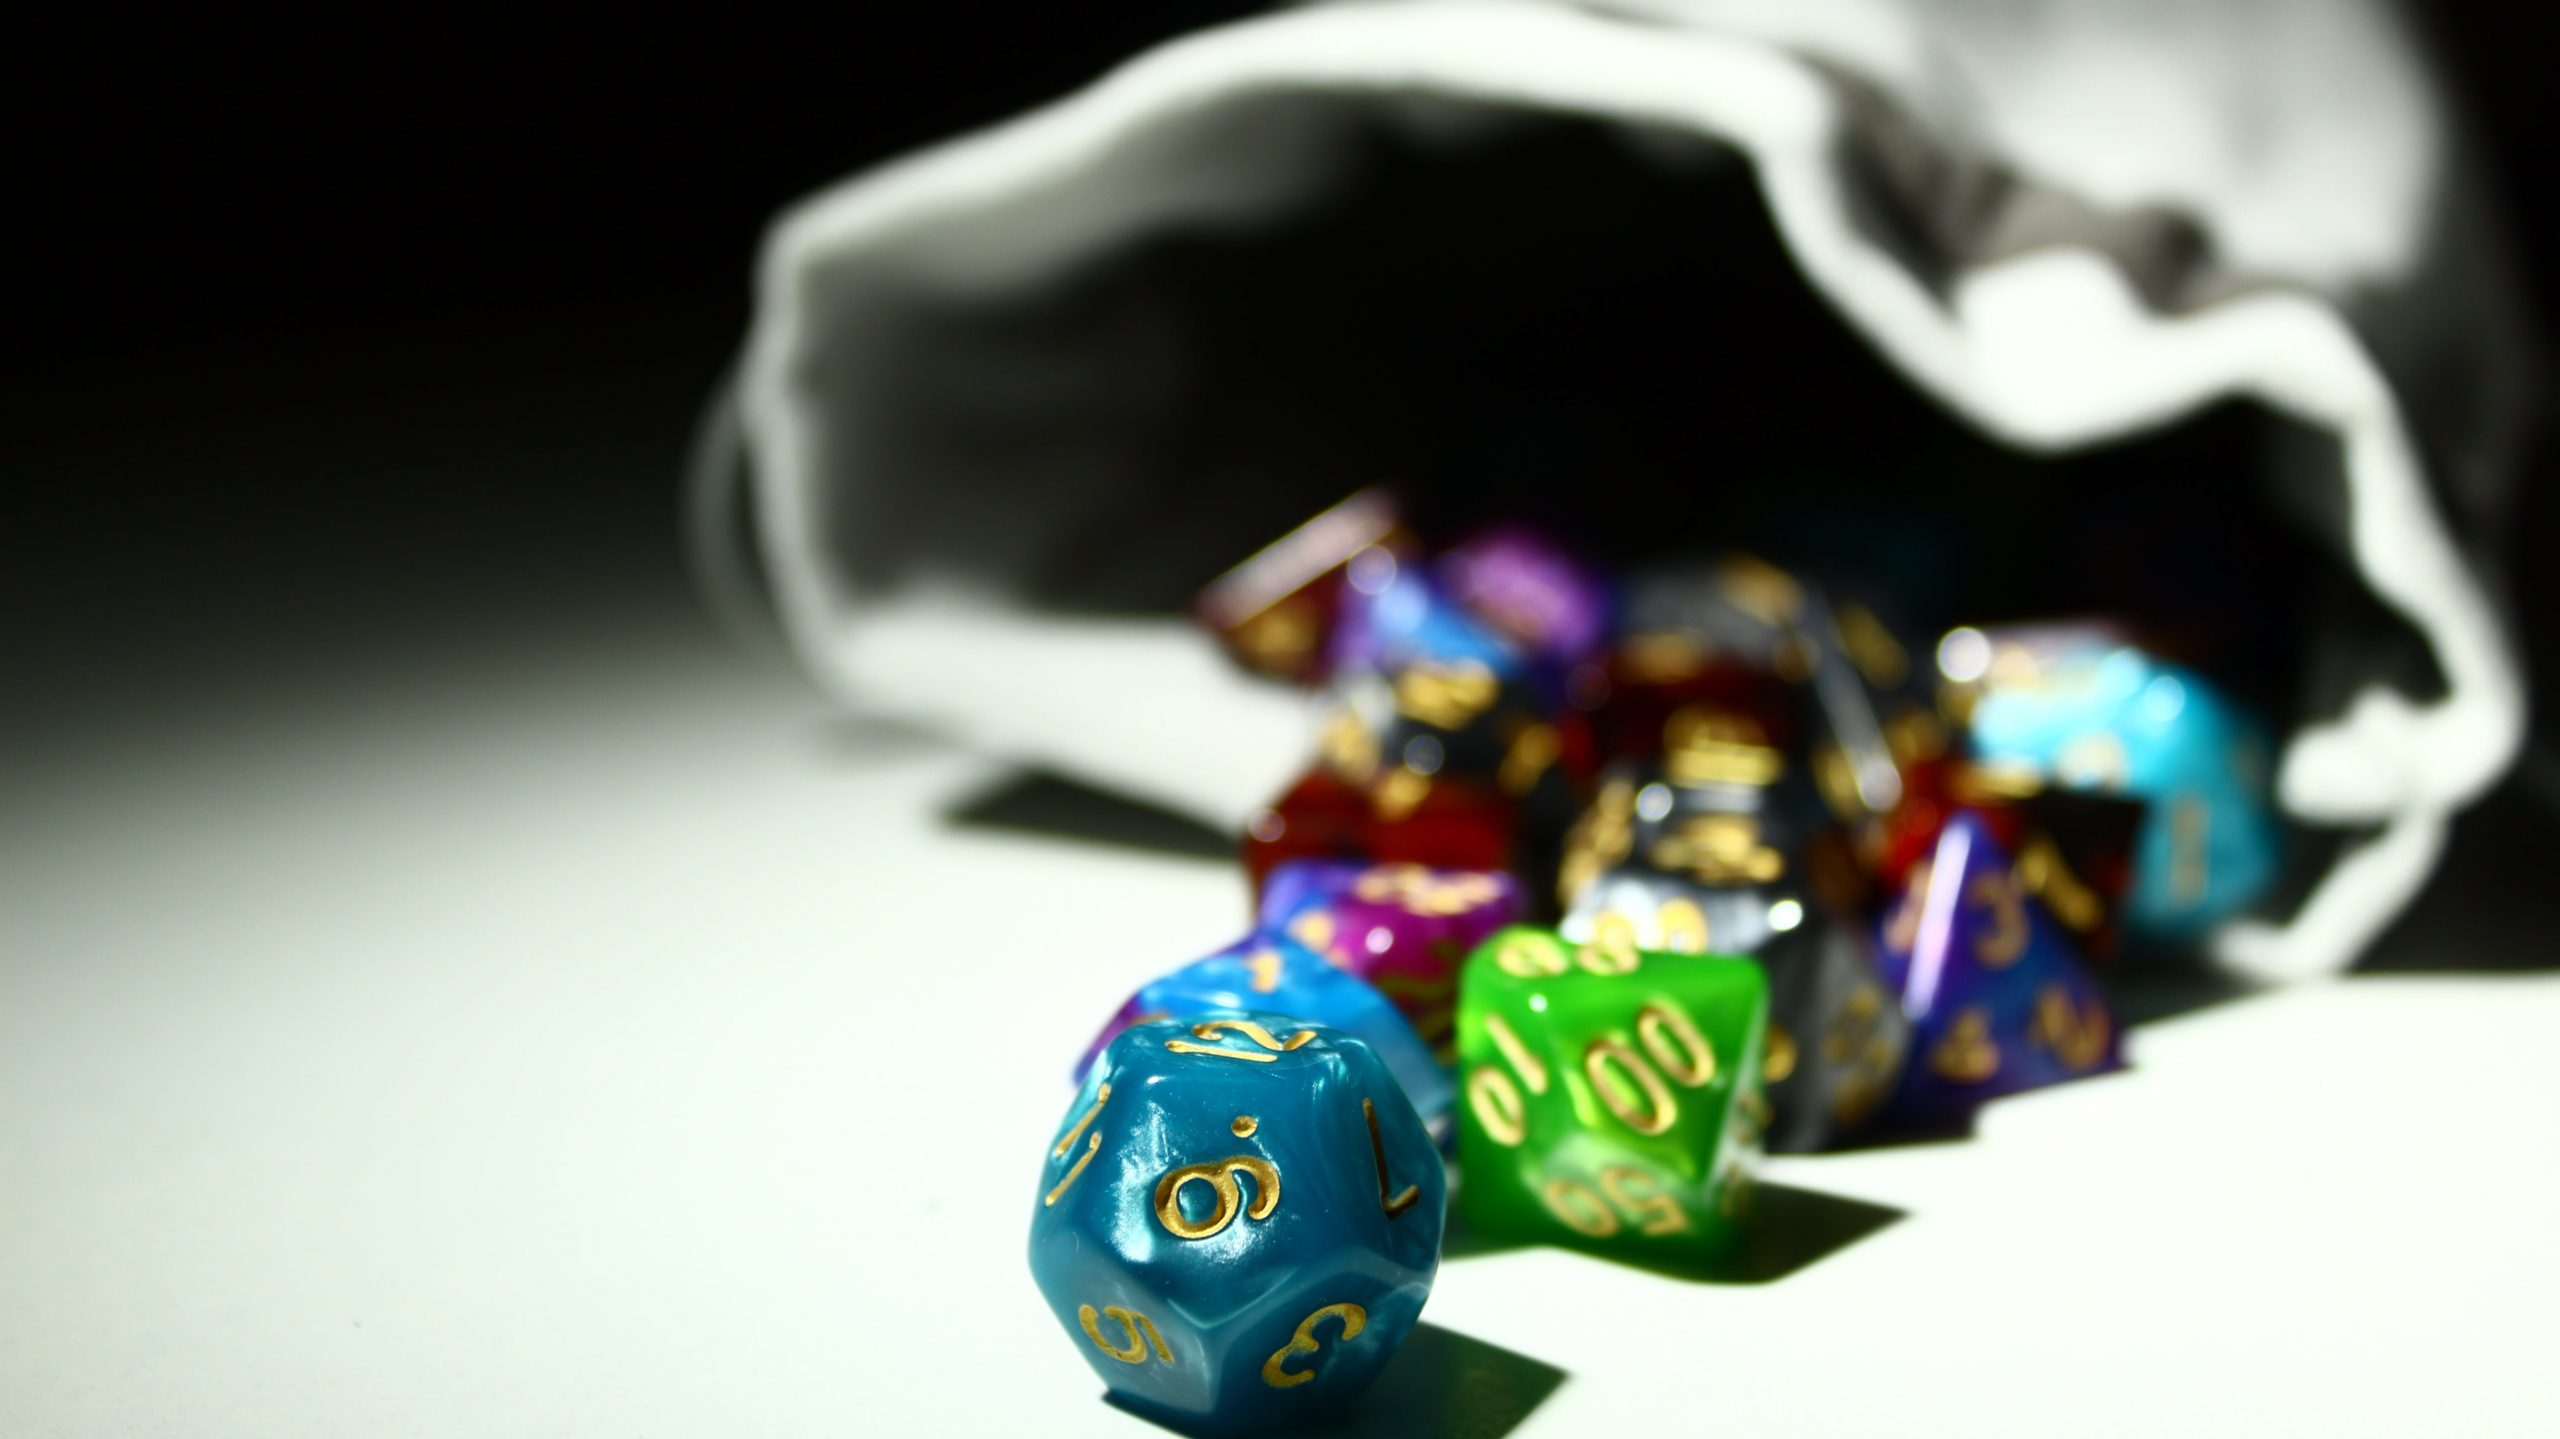 Budget D&D Polyhedral Dice with Bag